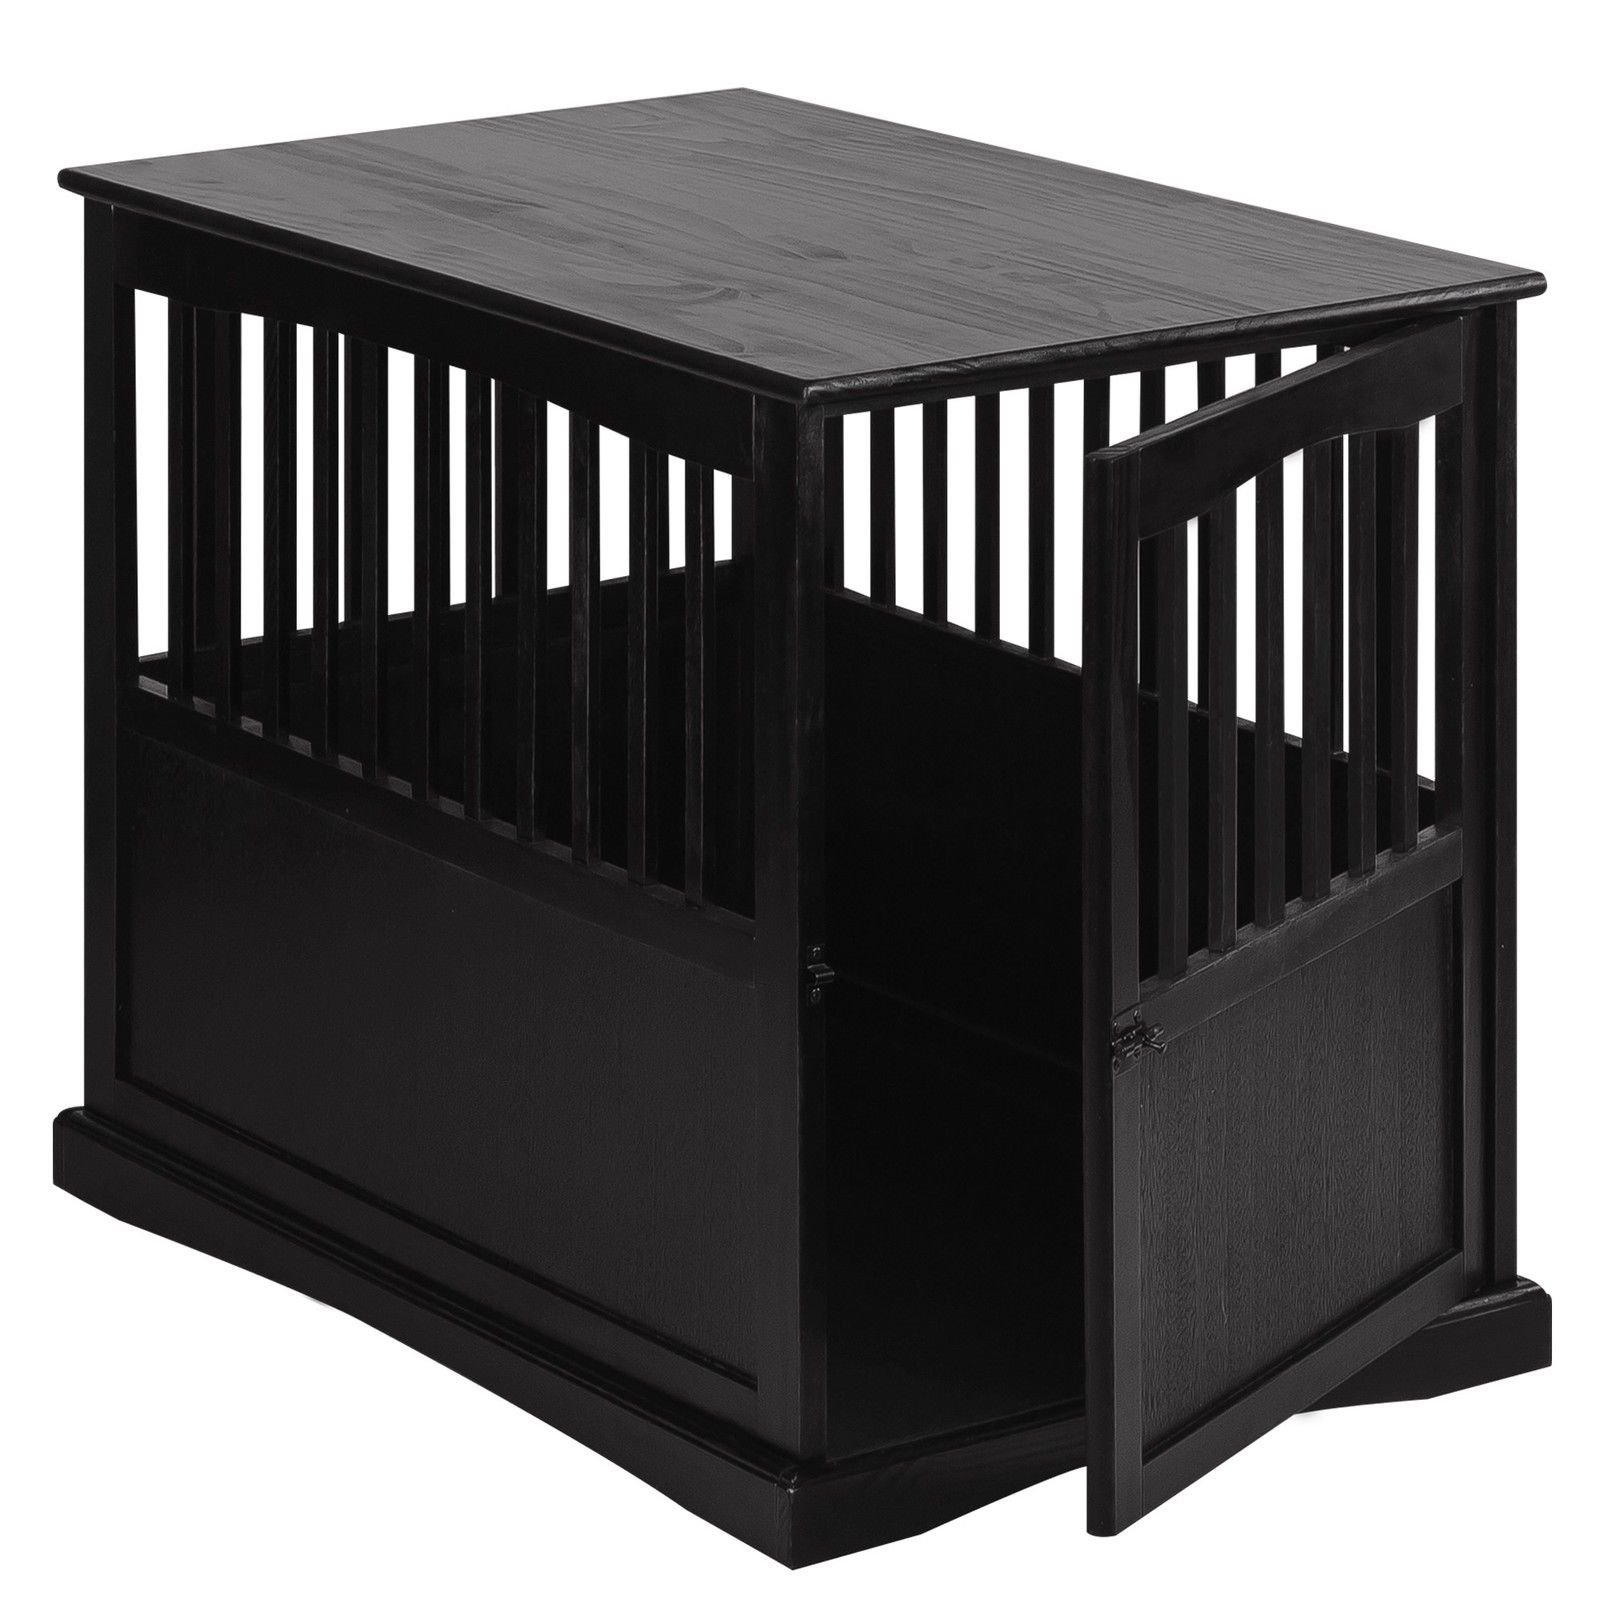 NEW! Wooden Furniture End Table and Pet Crate (Large, Black)